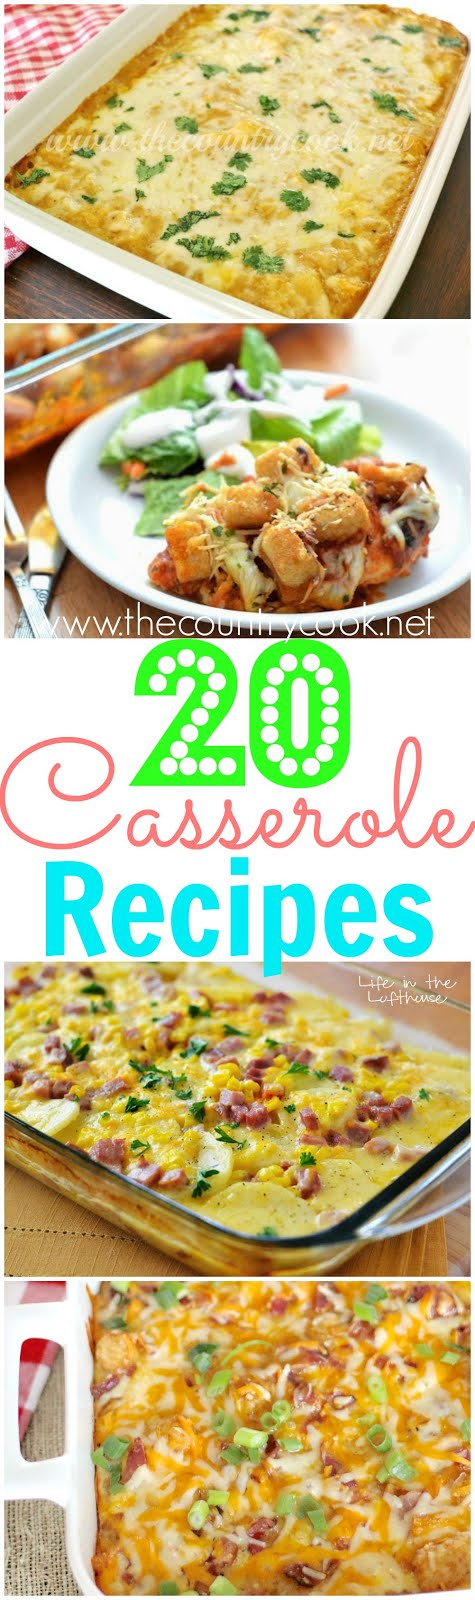 20 *Must-Have* Casserole Recipes